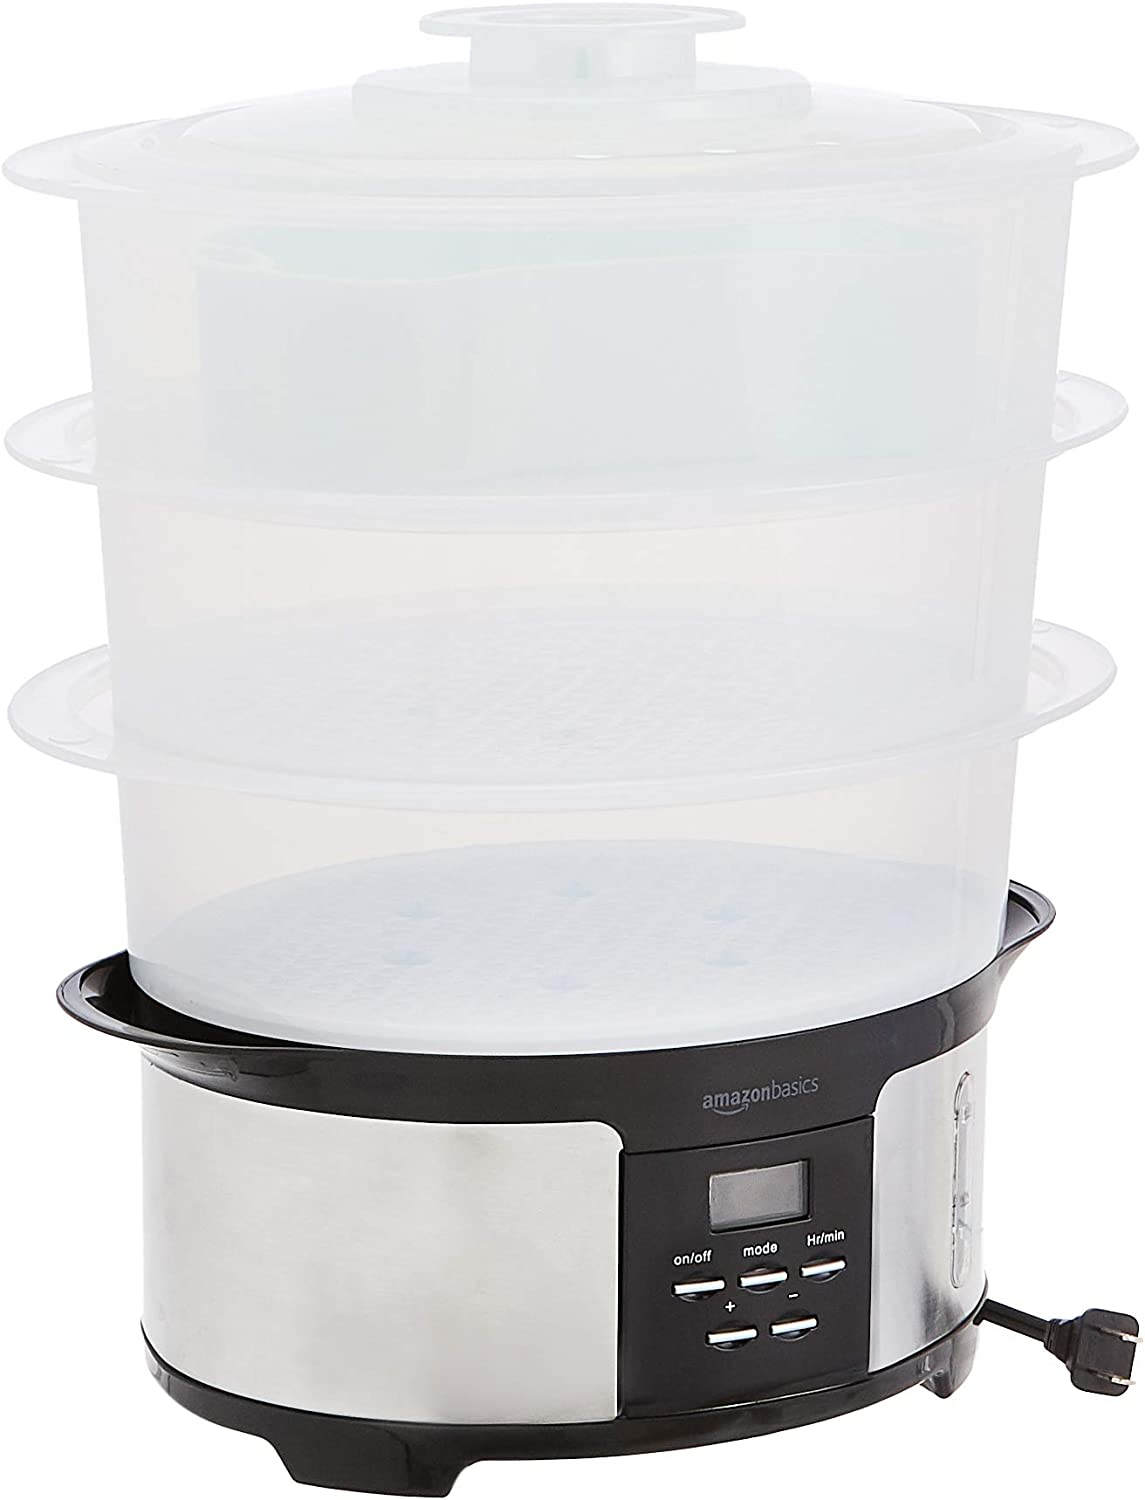 AmazonBasics 12.5 Quart 3-Tiered Digital Food Steamer - Black & Stainless Steel